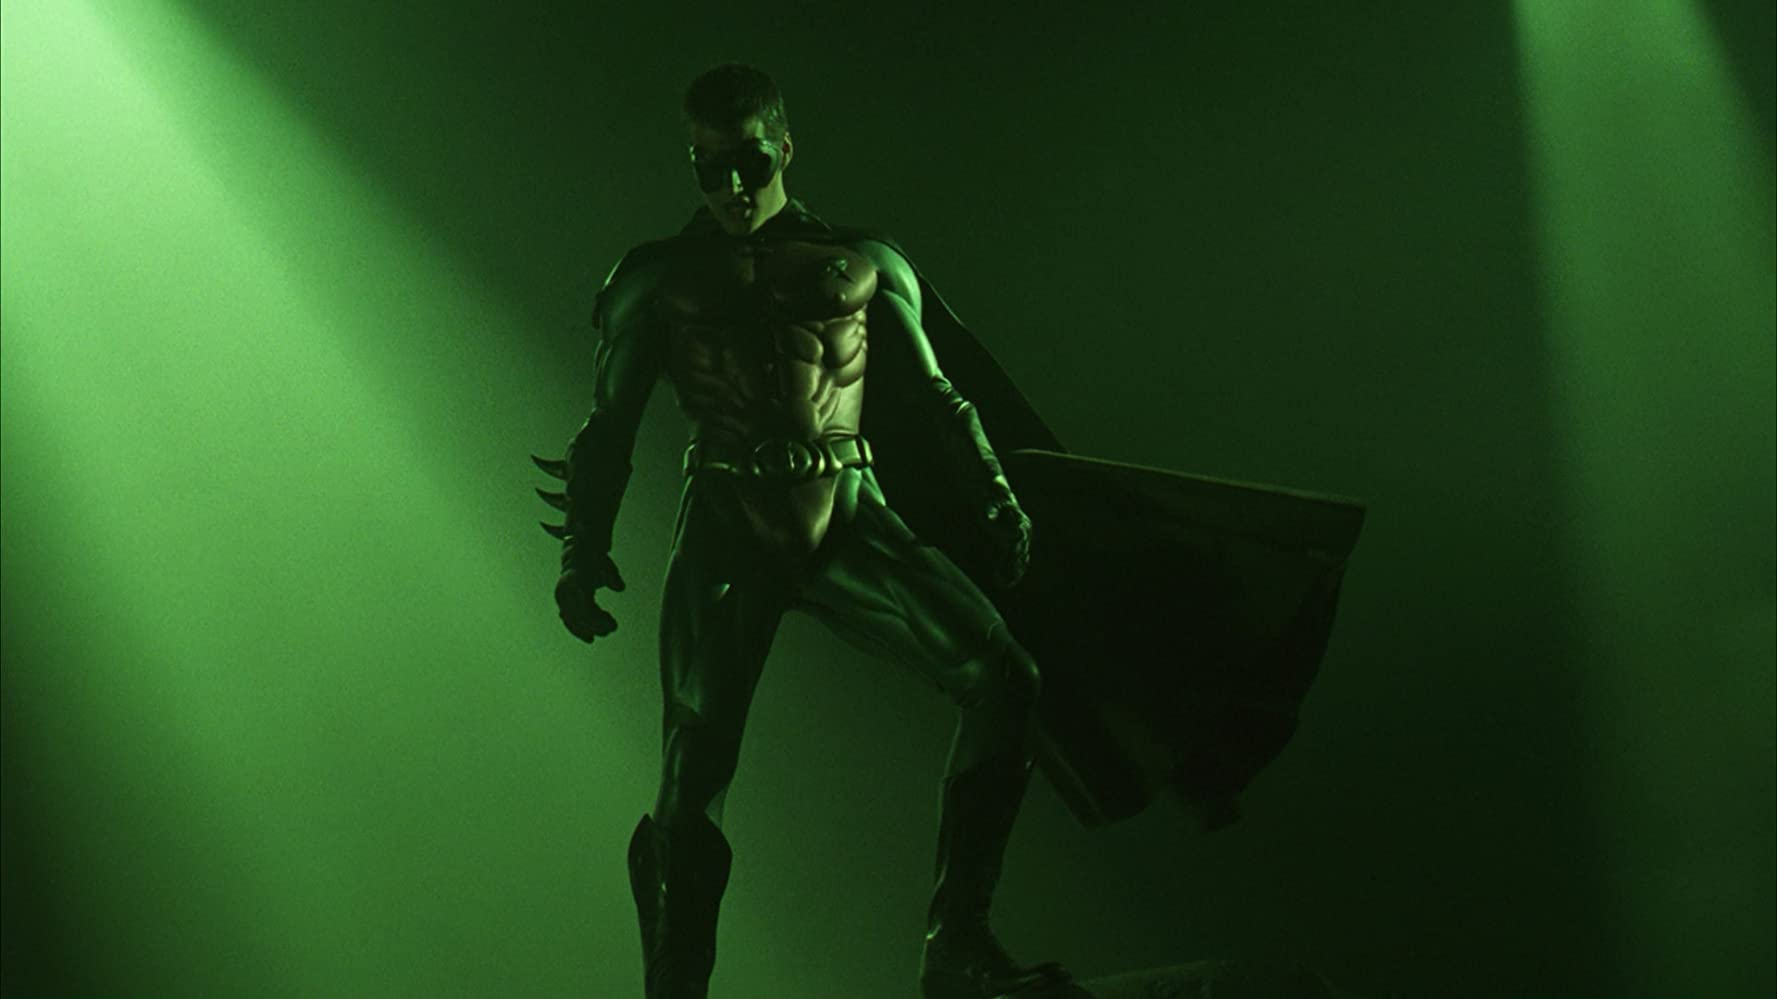 Chris O'Donnell in Batman Forever (1995)